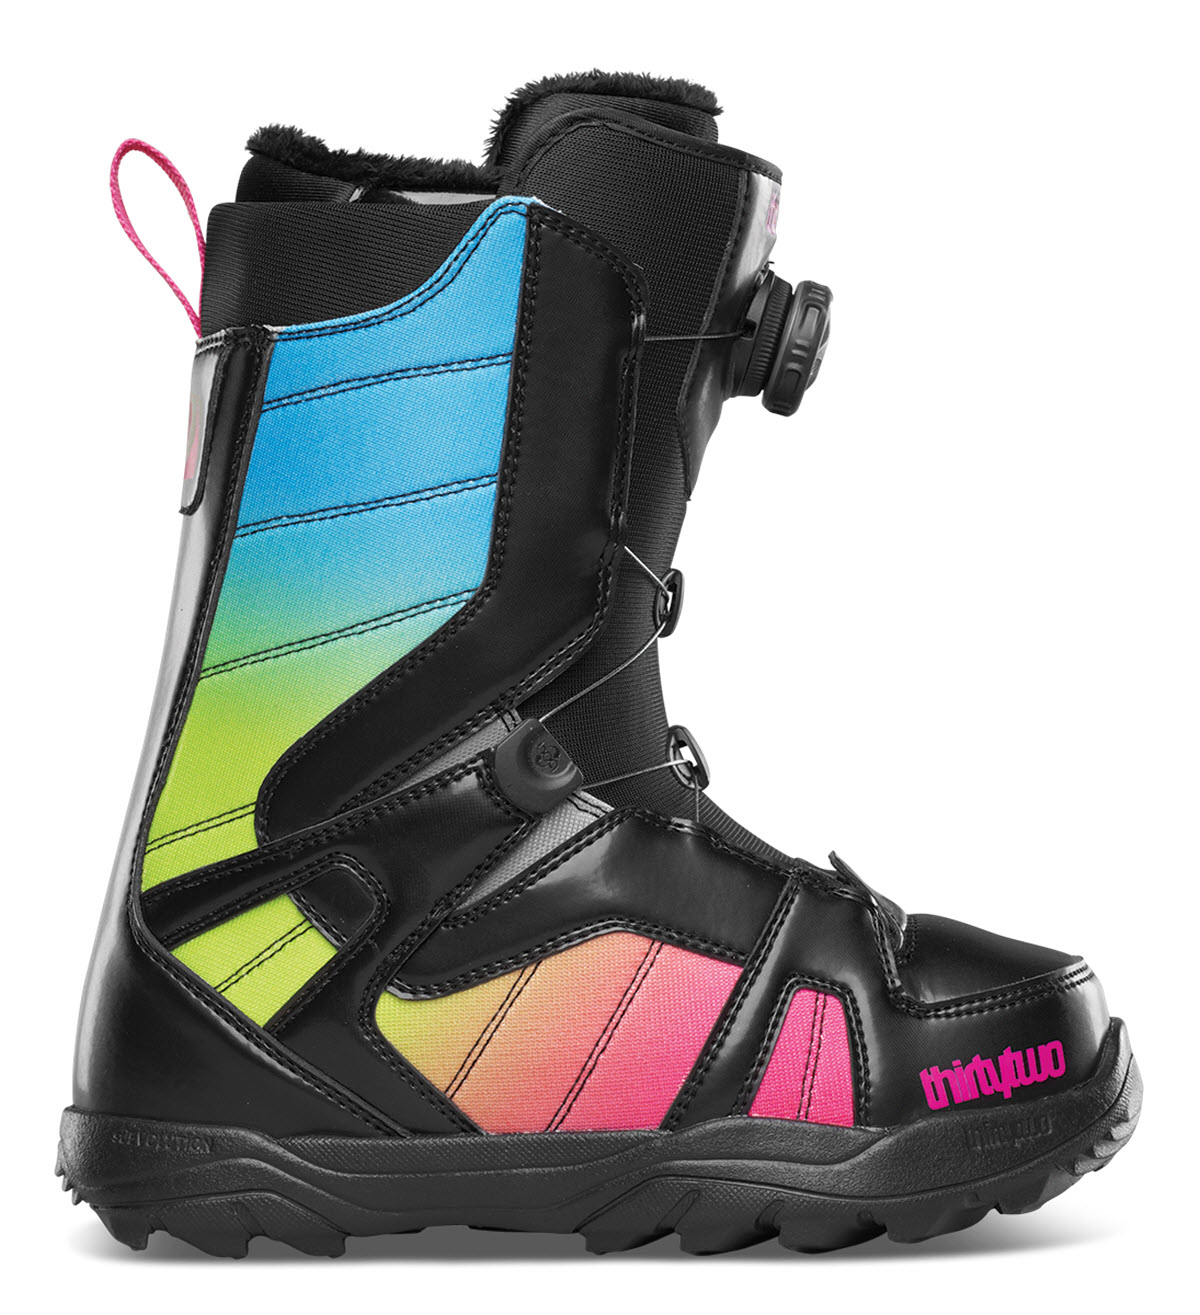 Thirtytwo 32 Sample Womens STW BOA Snowboard Boots UK 4.5